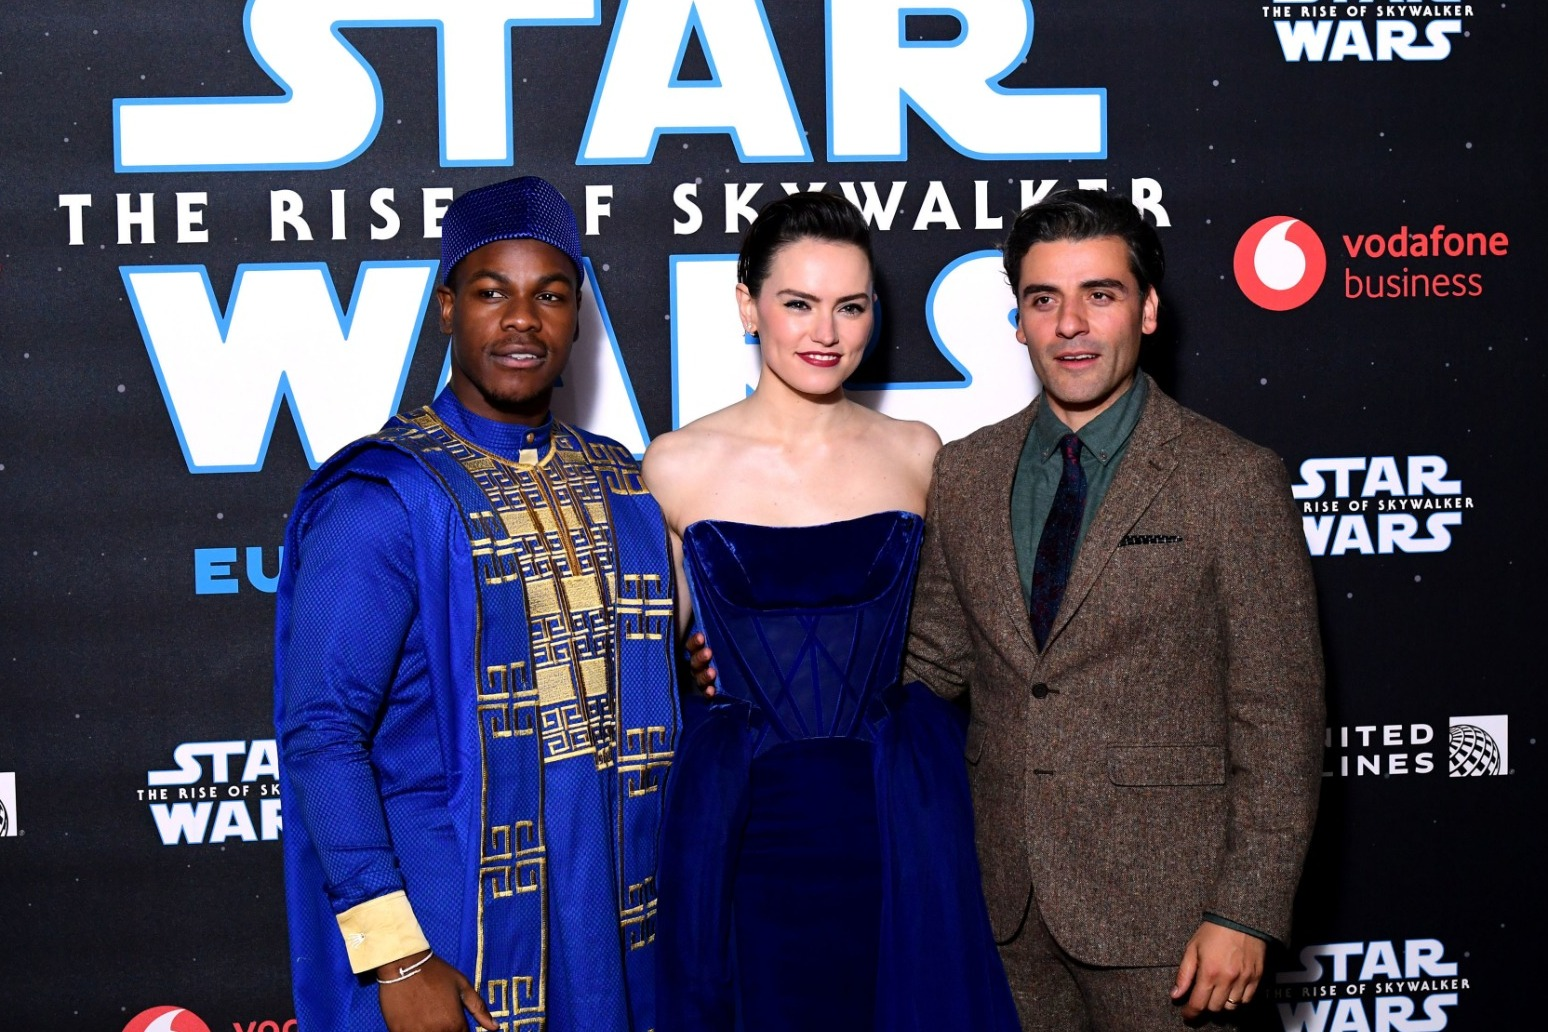 STAR WARS PREMIERE TAKES PLACE IN LONDON